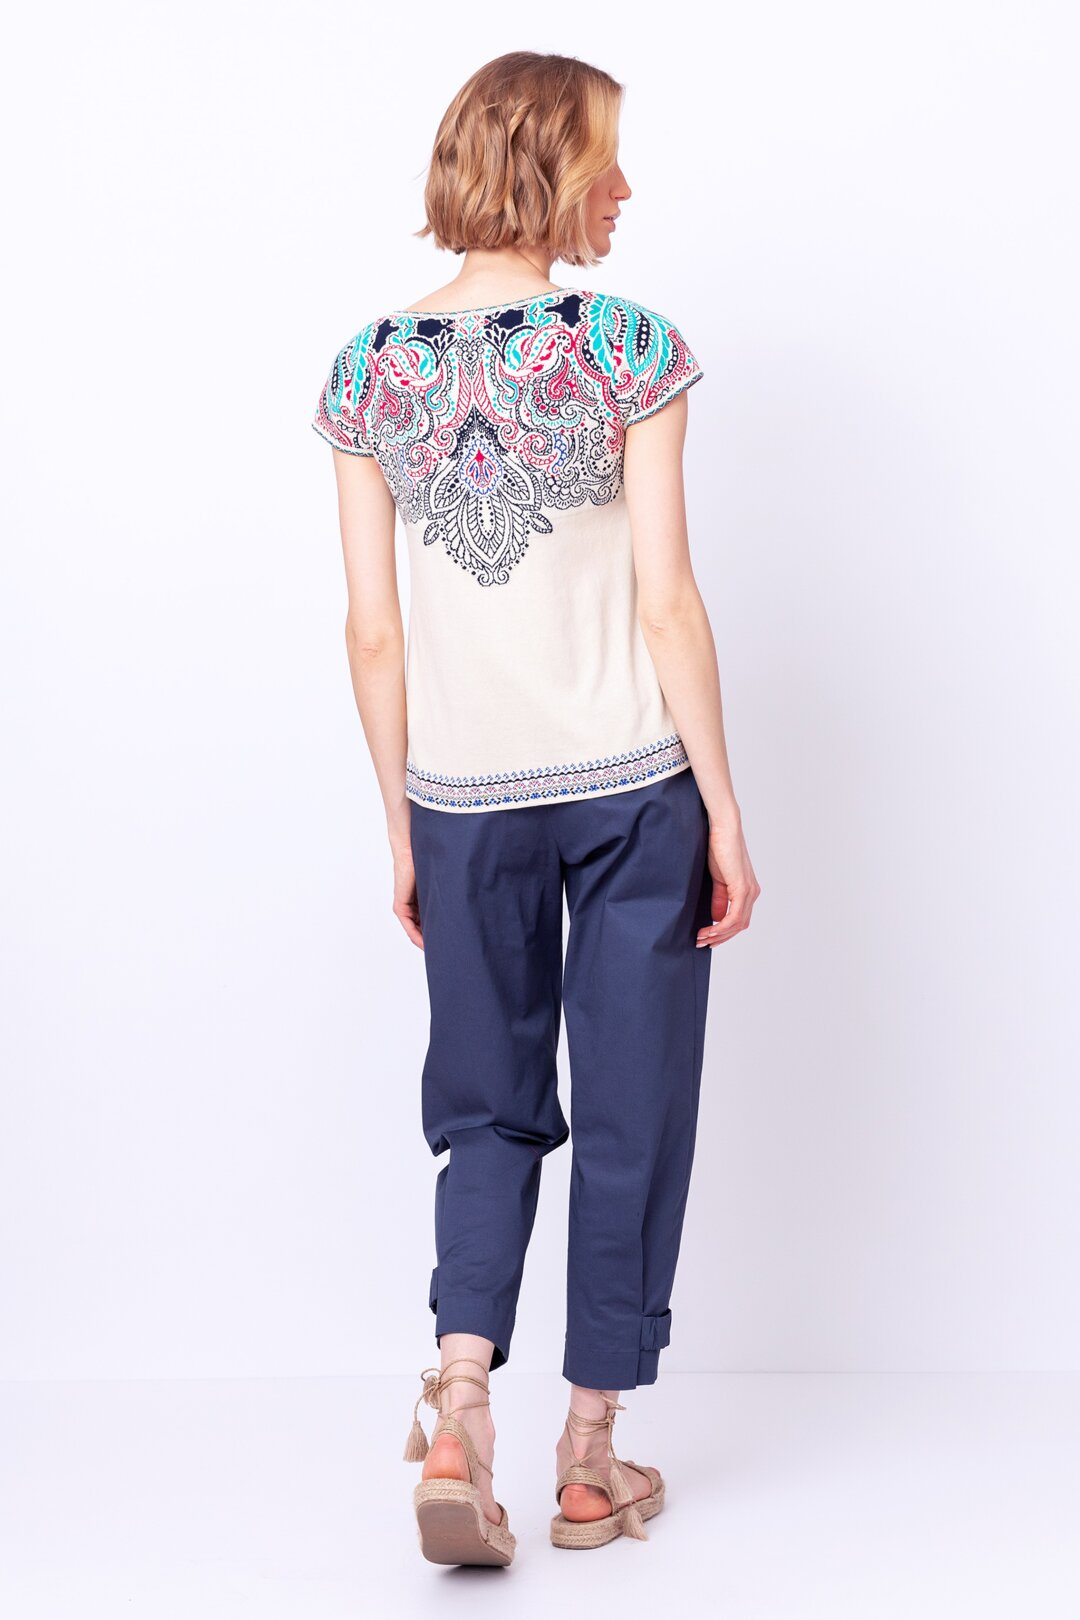 outfit-211732011b